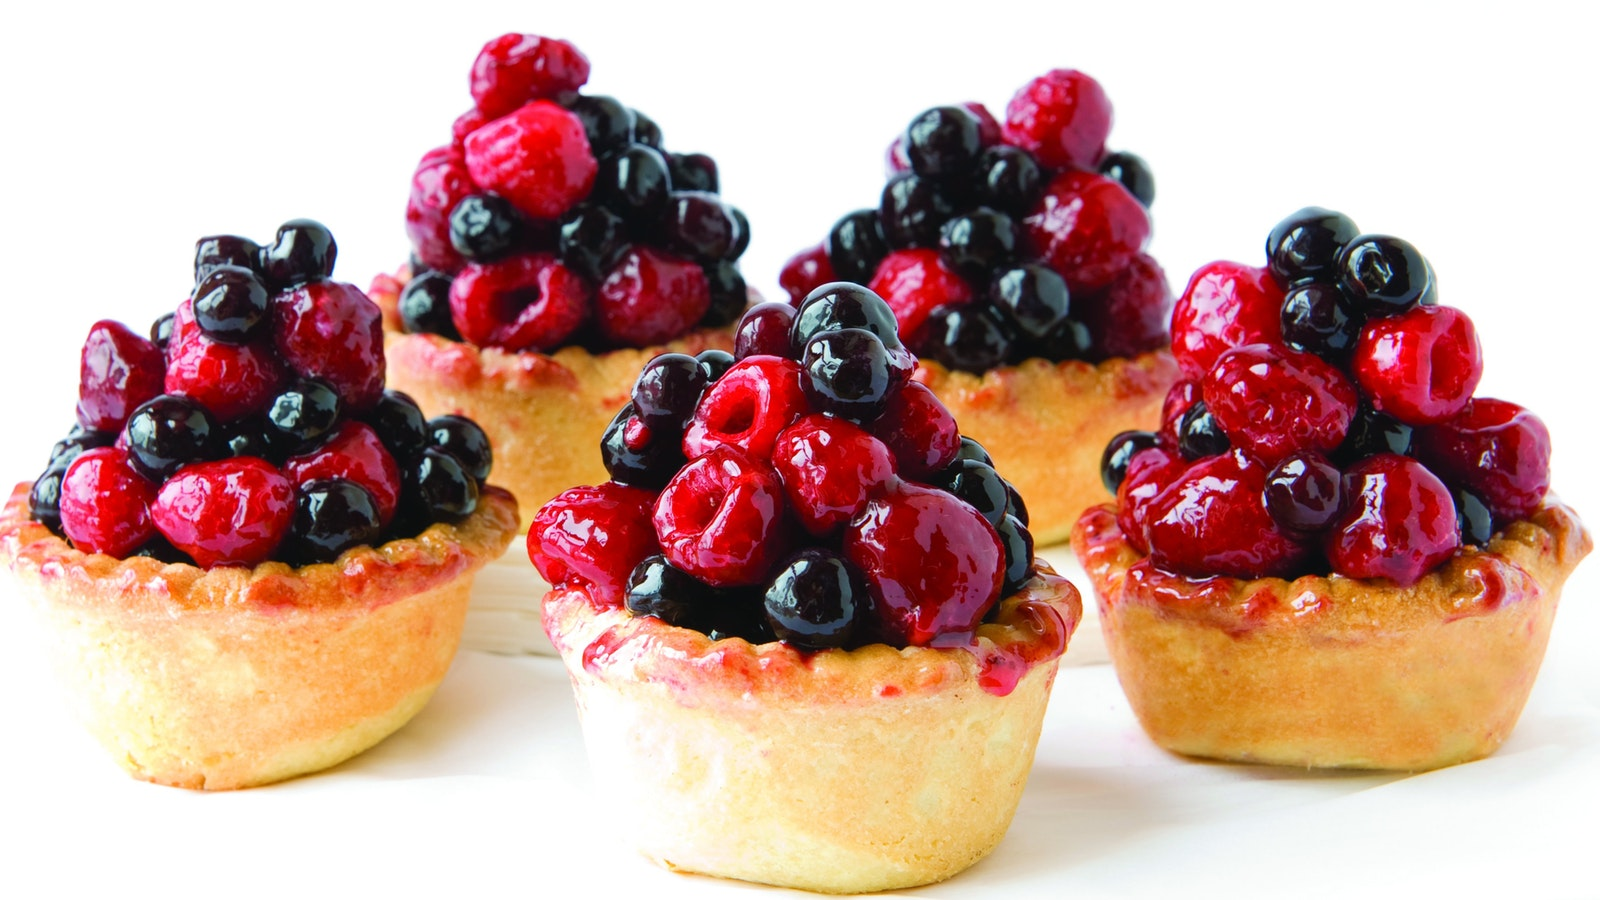 Baked custard in delicious shortcrust pastry topped with juicy berries